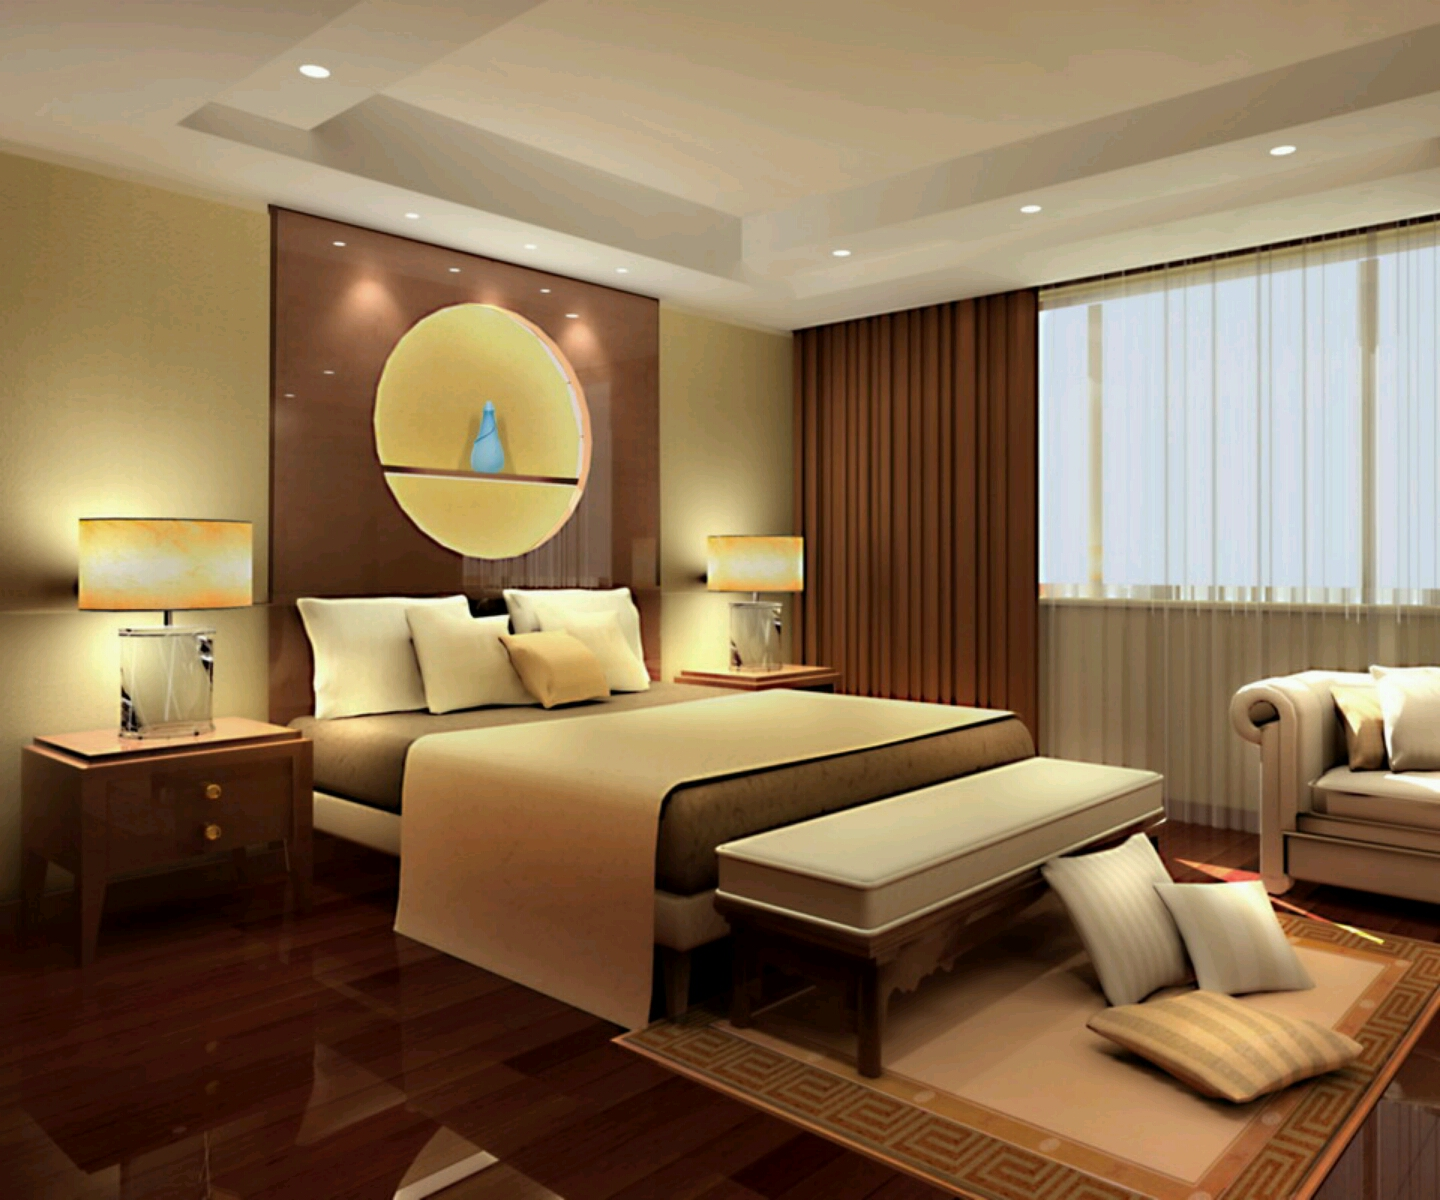 Foundation dezin decor special interiors for Simple interior design for bedroom